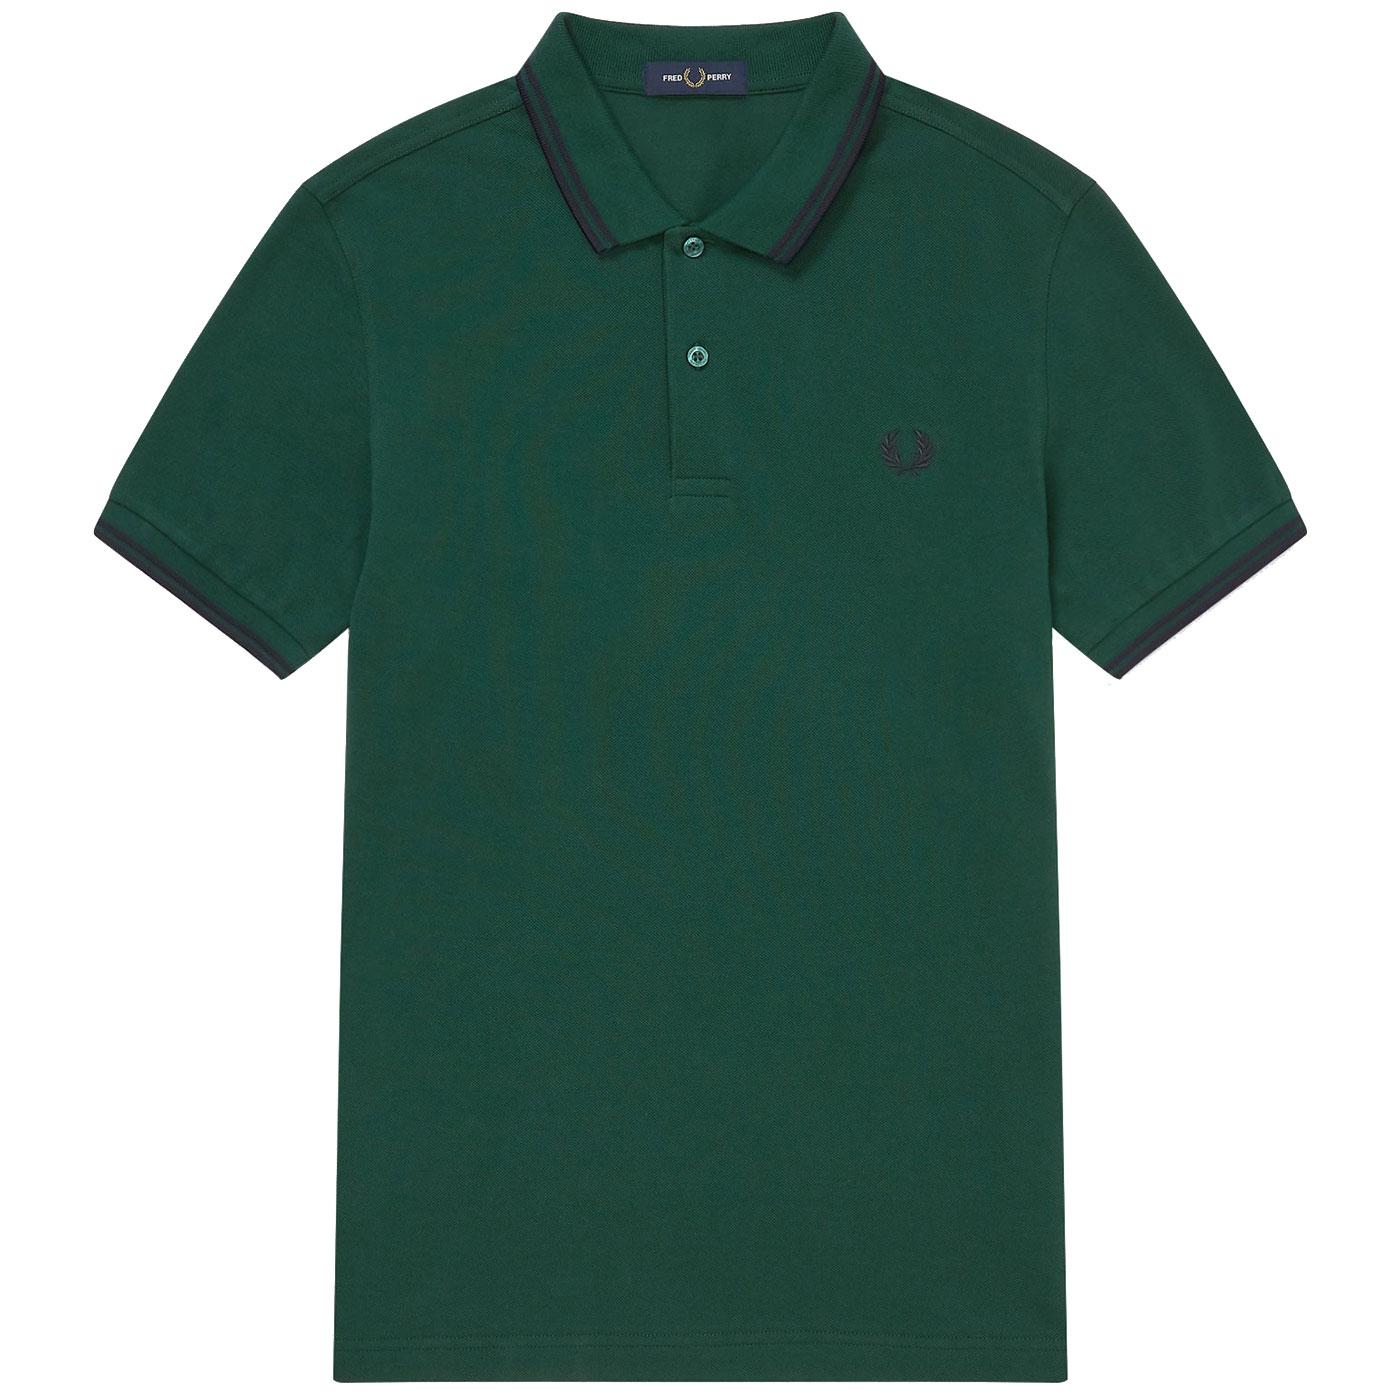 FRED PERRY M3600 Men's Twin Tipped Pique Polo IVY